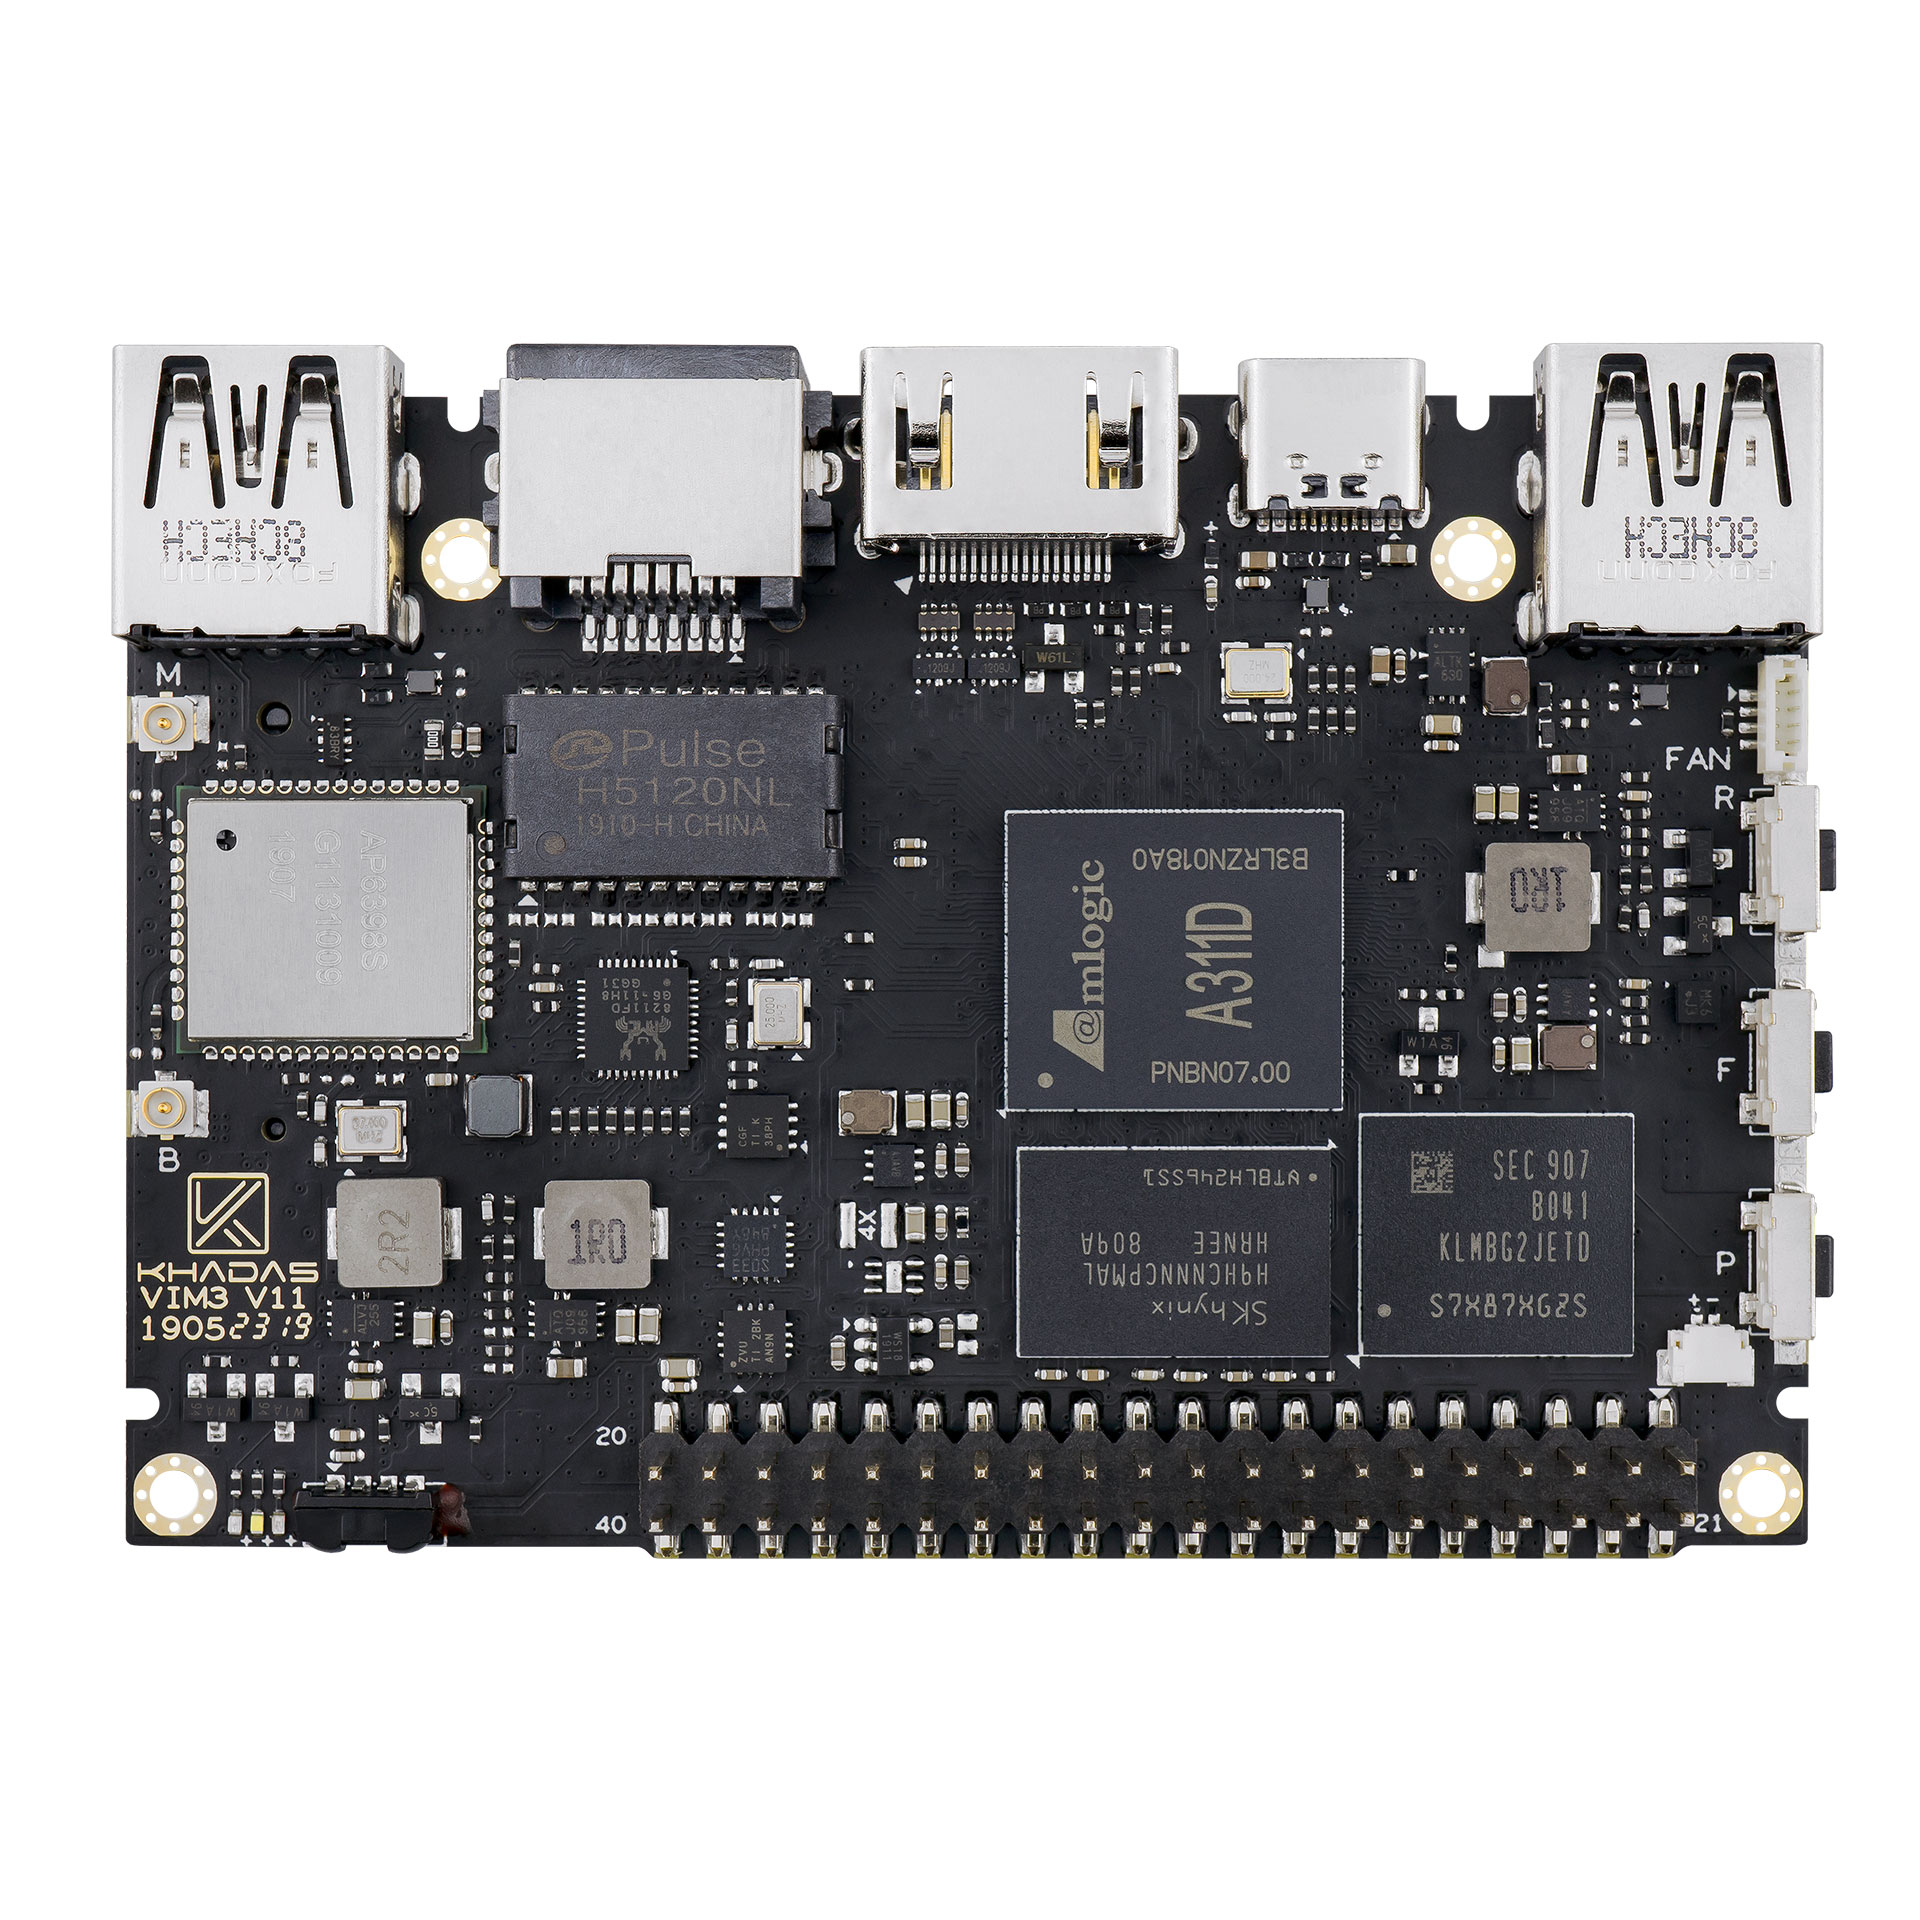 Amlogic A311D Single Board Computer With 5.0 TOPS NPU AI tensorflow x4 Cortex-A73 x2 A53 Cores Khadas VIM3 Basic SBC image